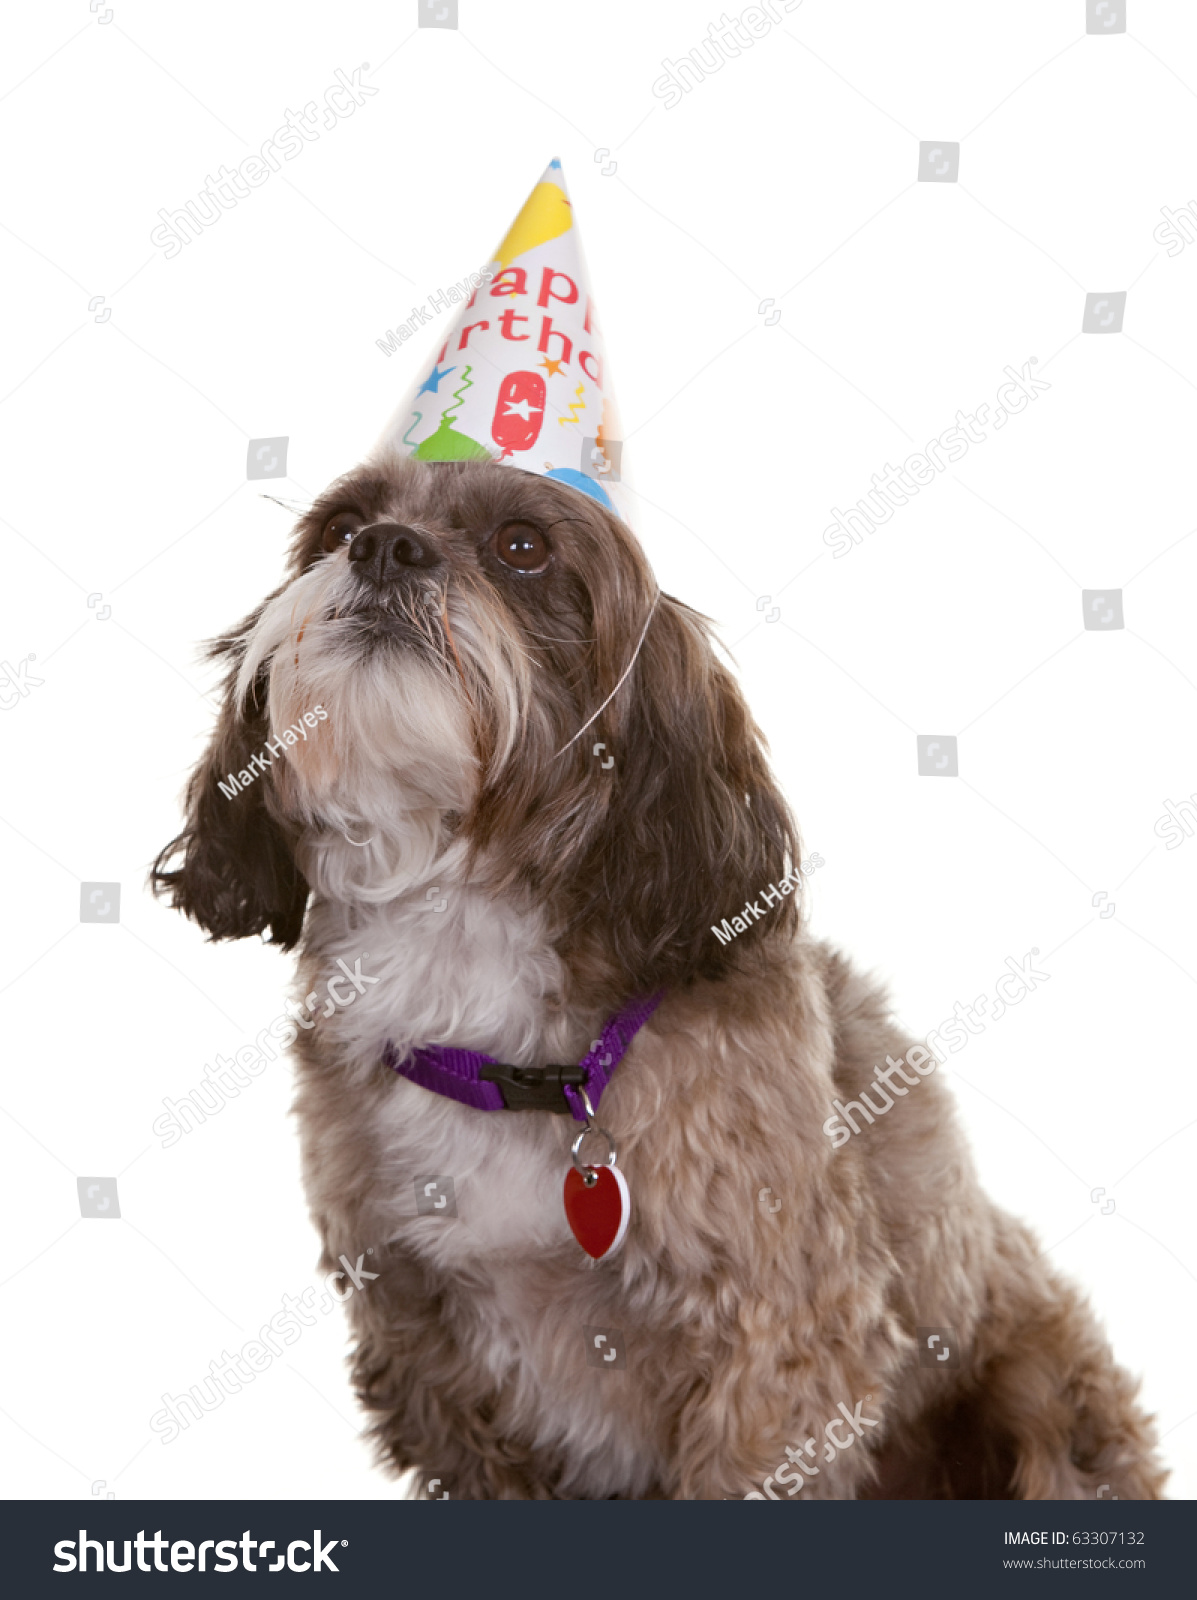 Small Dog Wearing A Birthday Party Hat